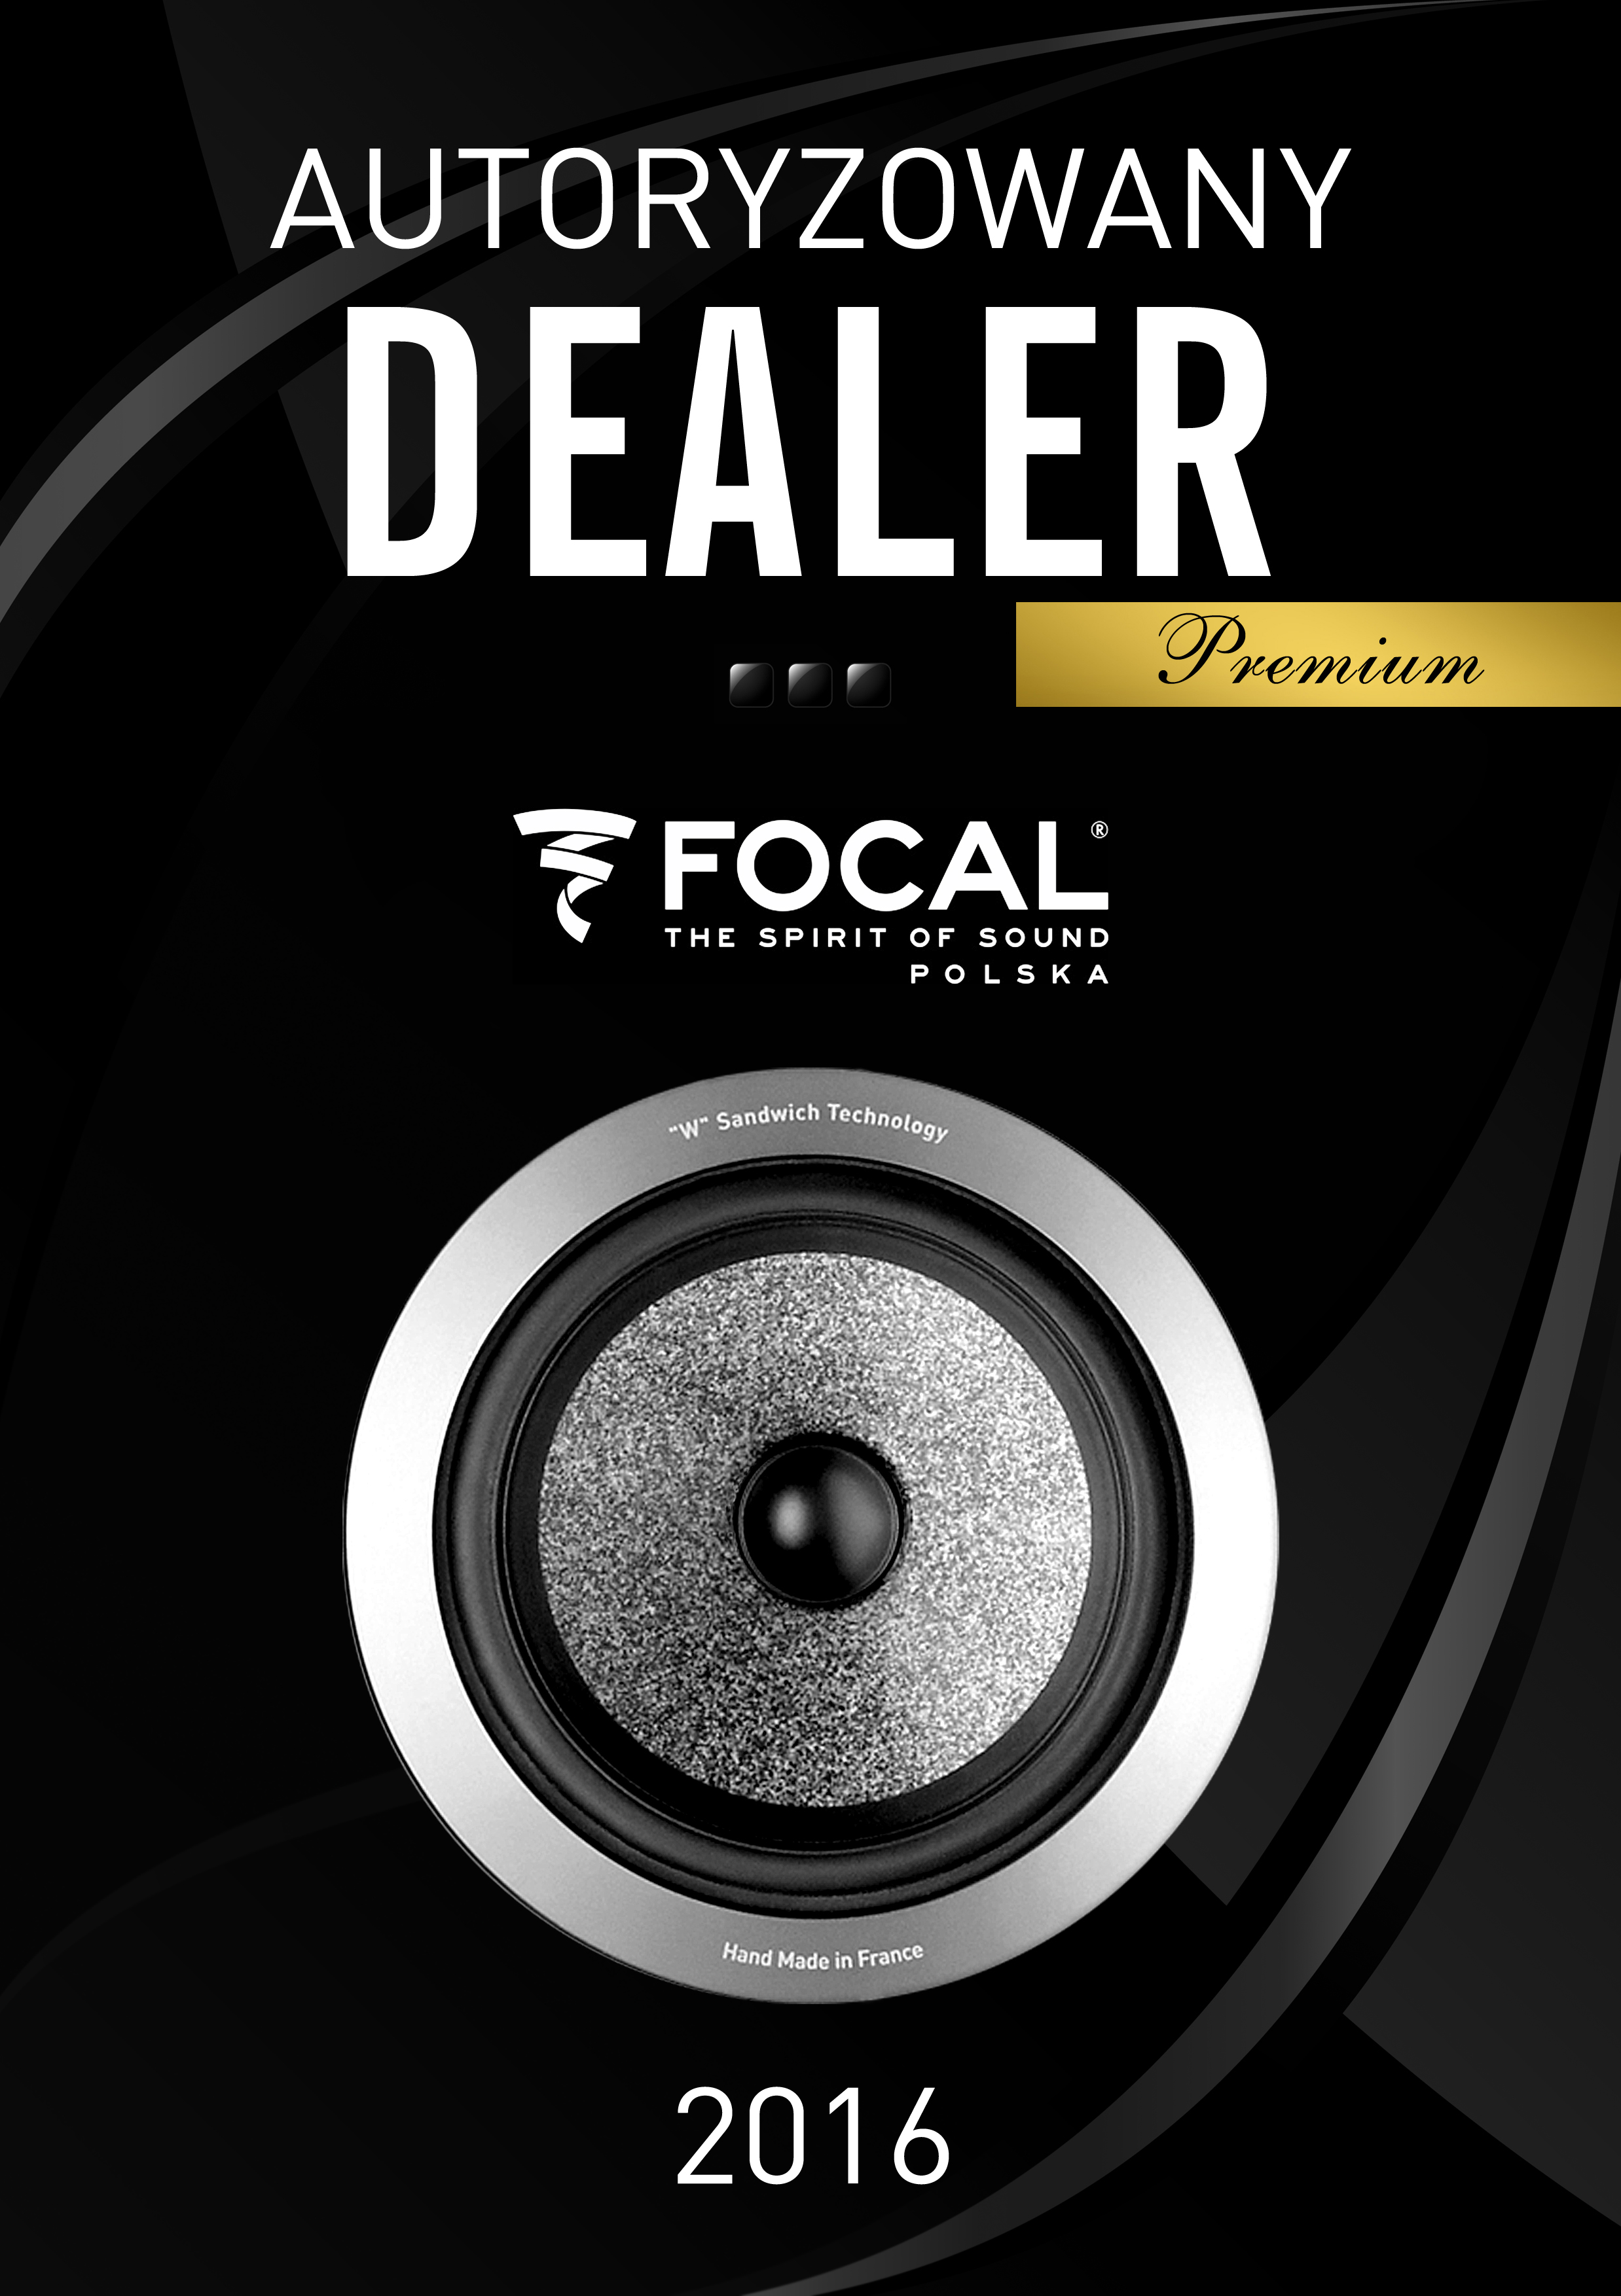 Focal Dealer